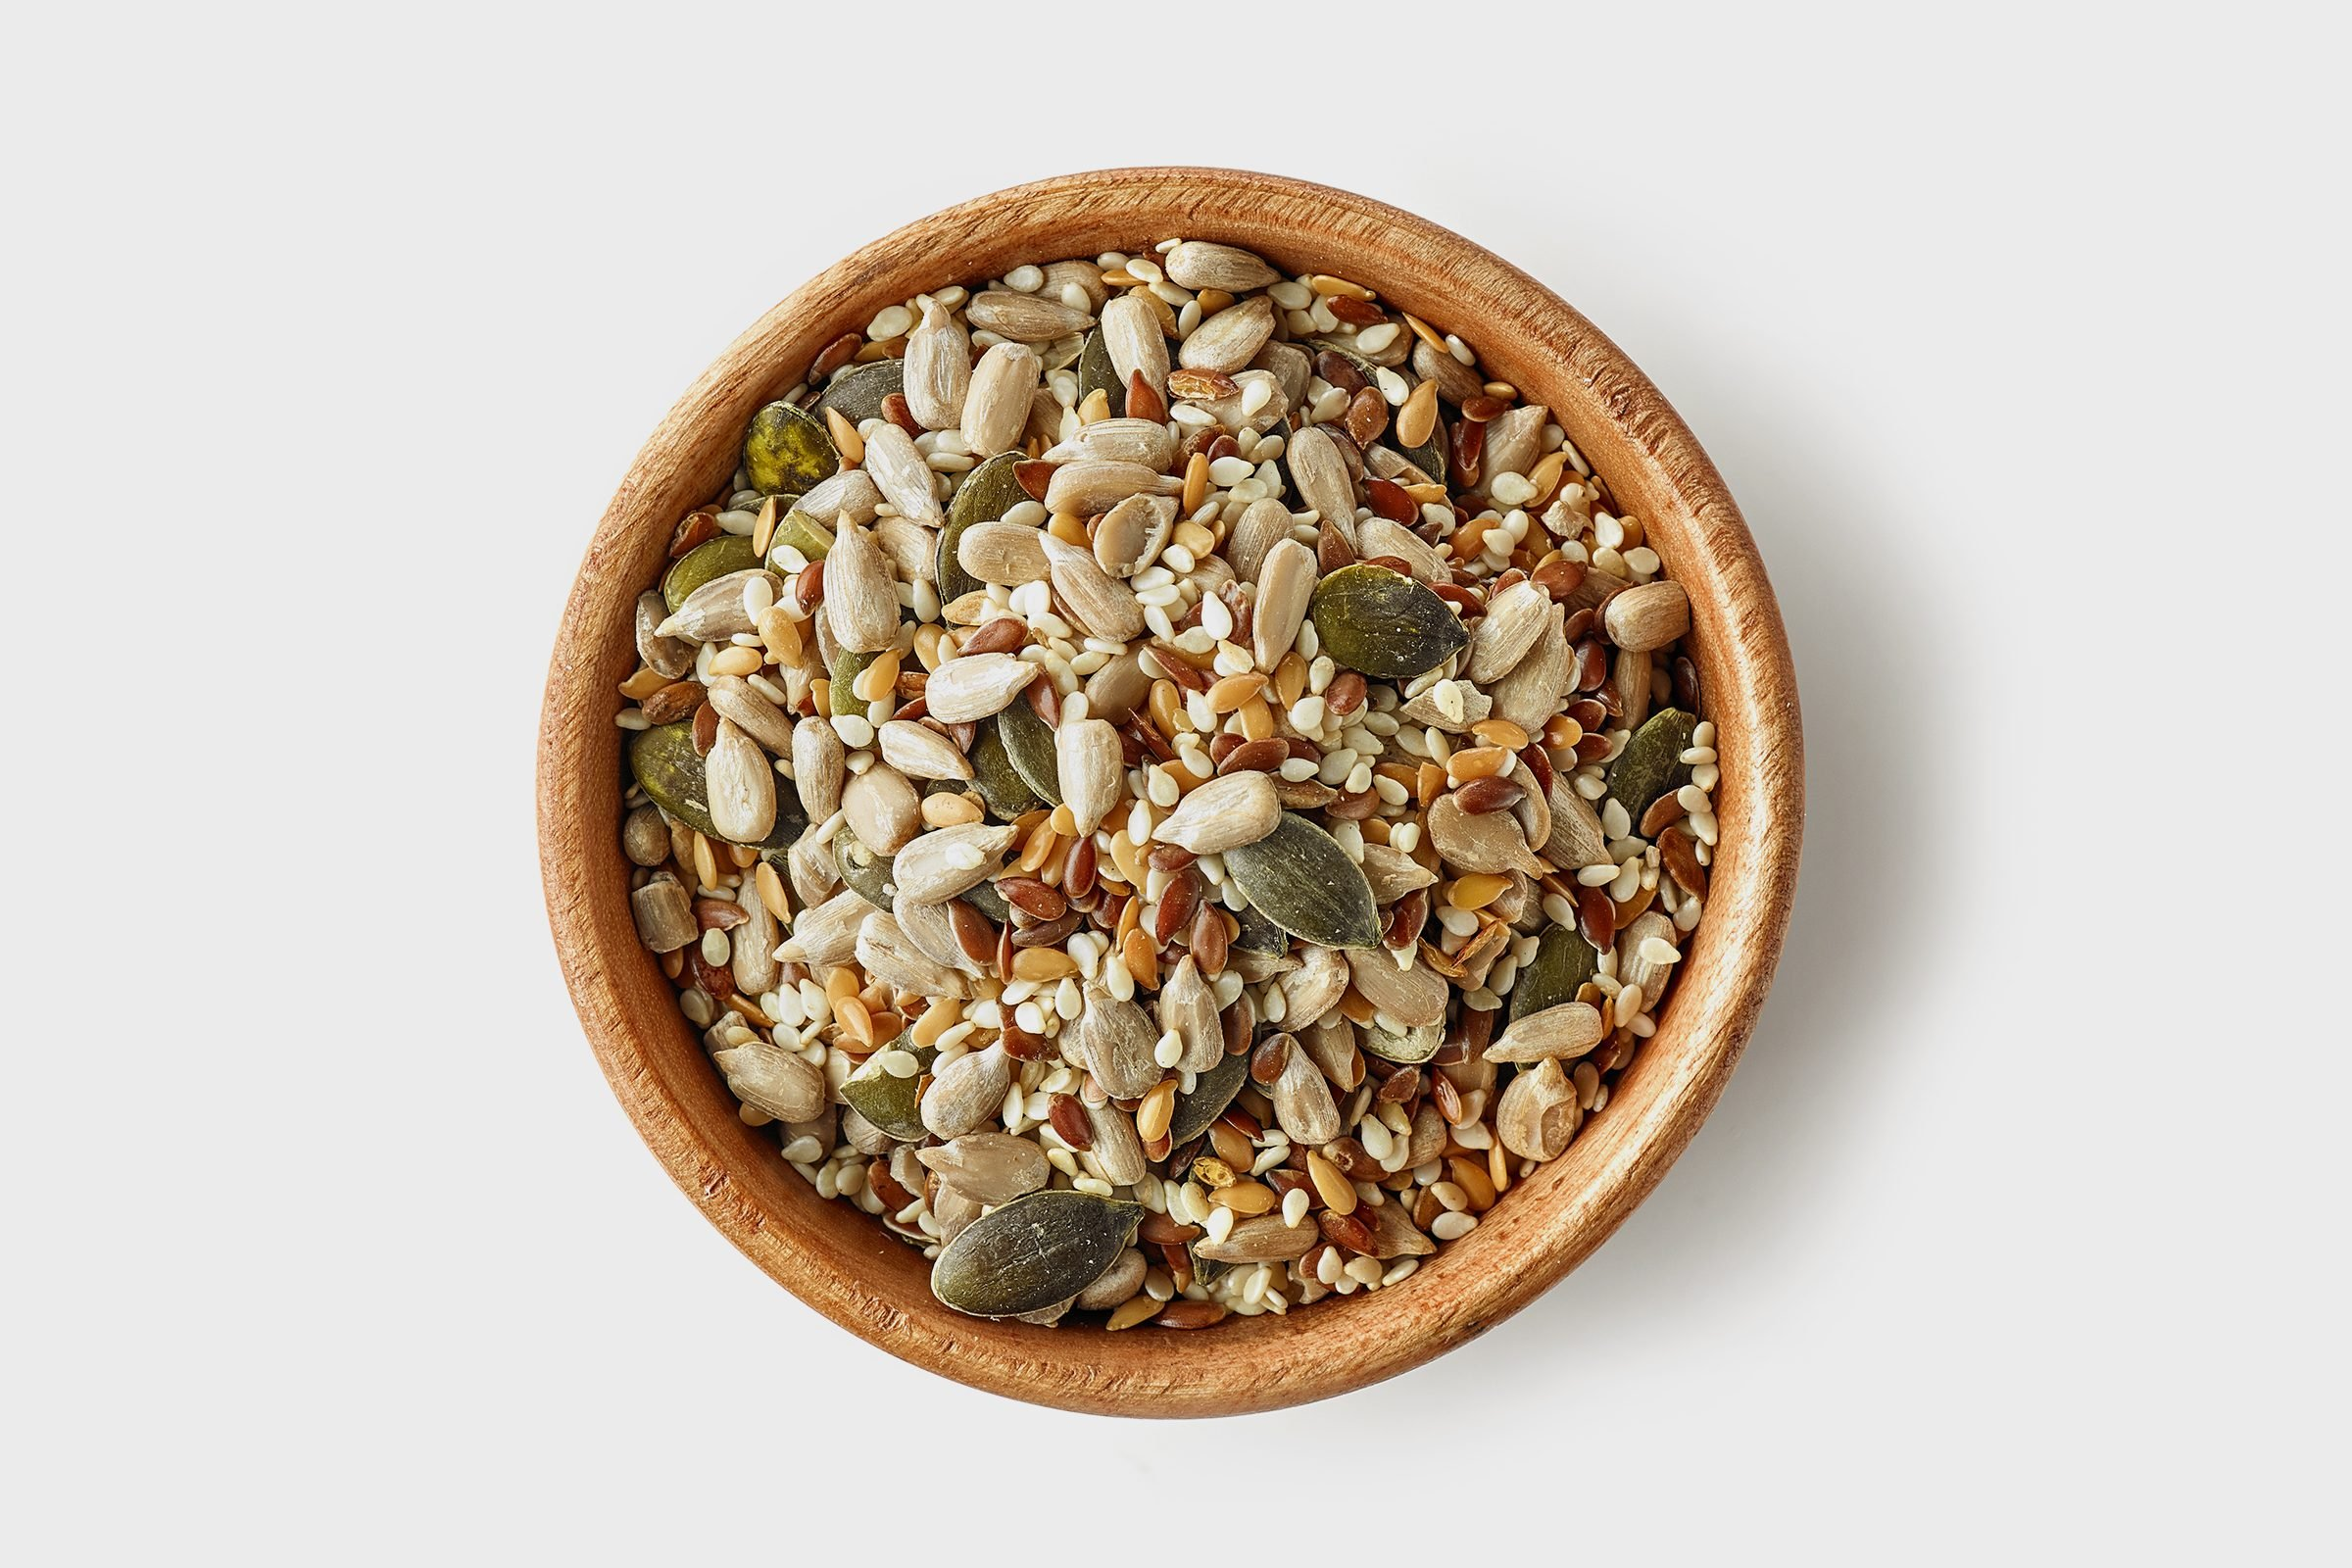 bowl of various seeds on white background